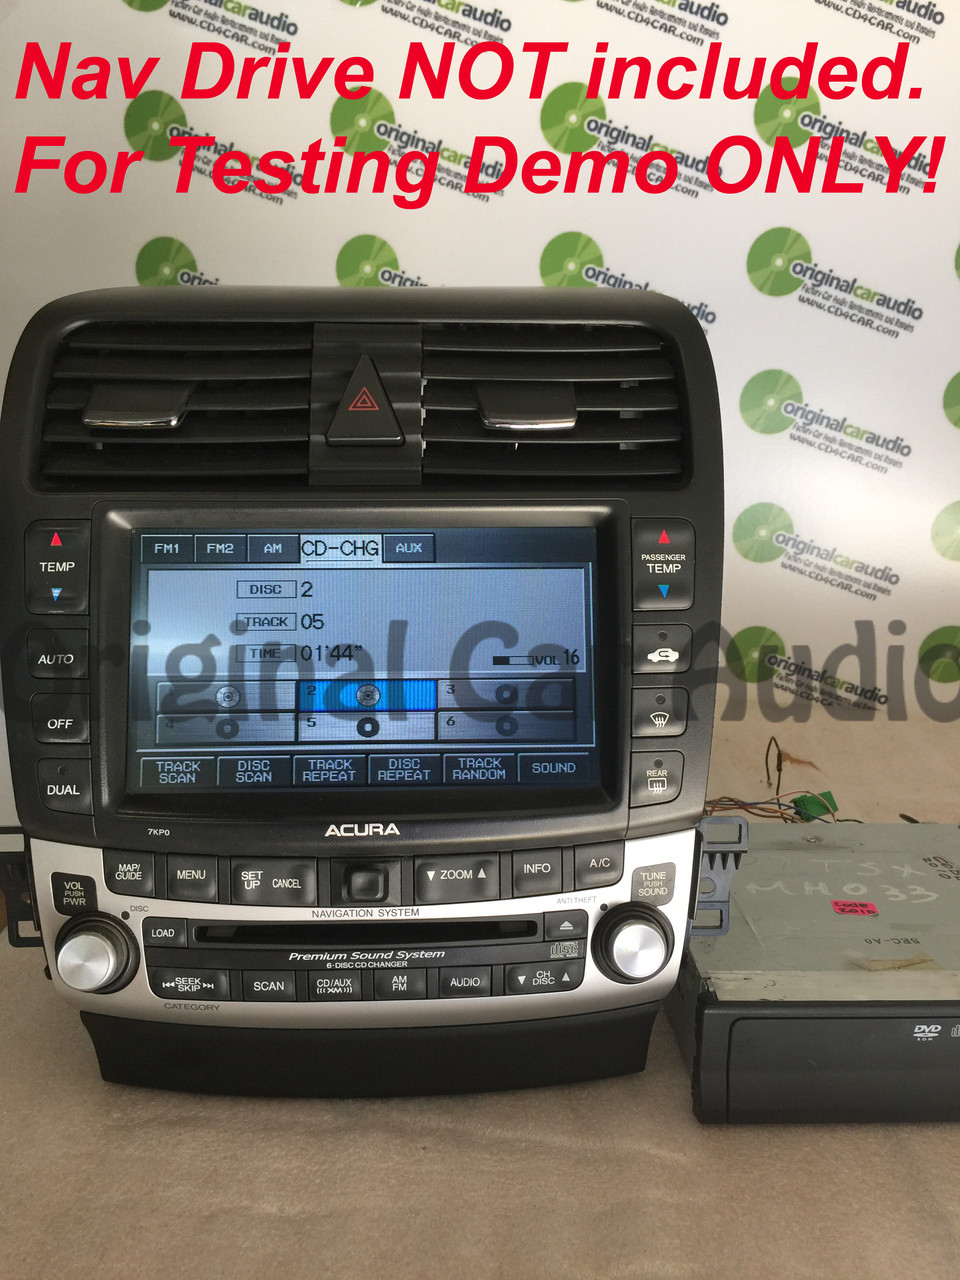 2005-2006 ACURA TSX Navigation GPS Radio 6 Disc Changer CD